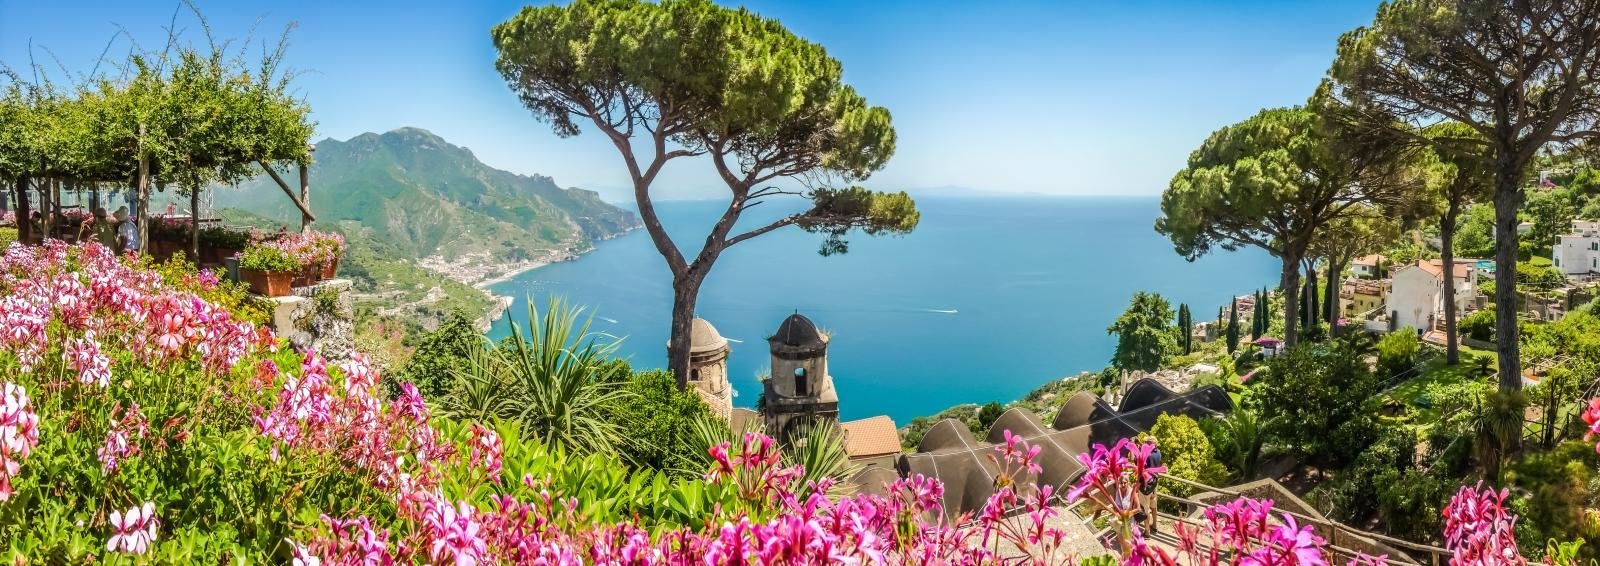 Walking the Amalfi Coast, Italy - Tour